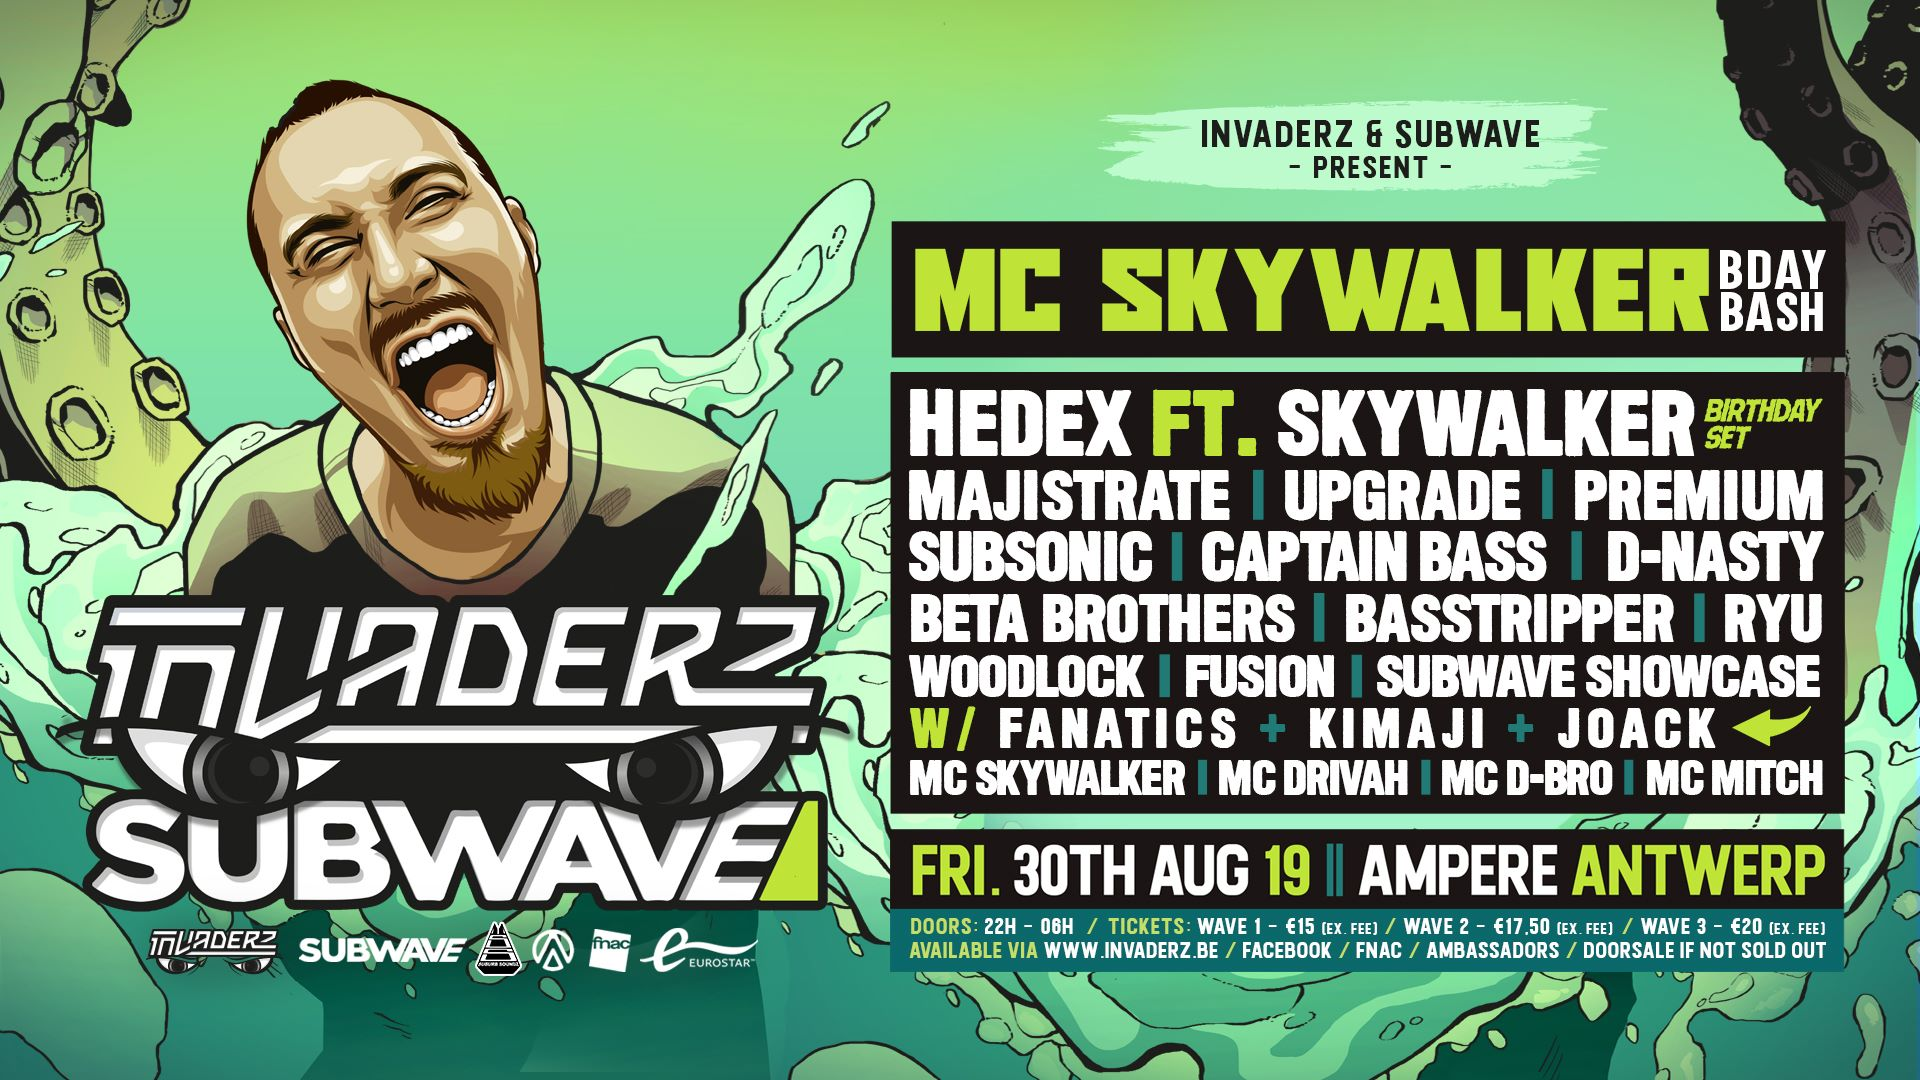 Invaderz x Subwave: MC Skywalker Birthday Bash 2019